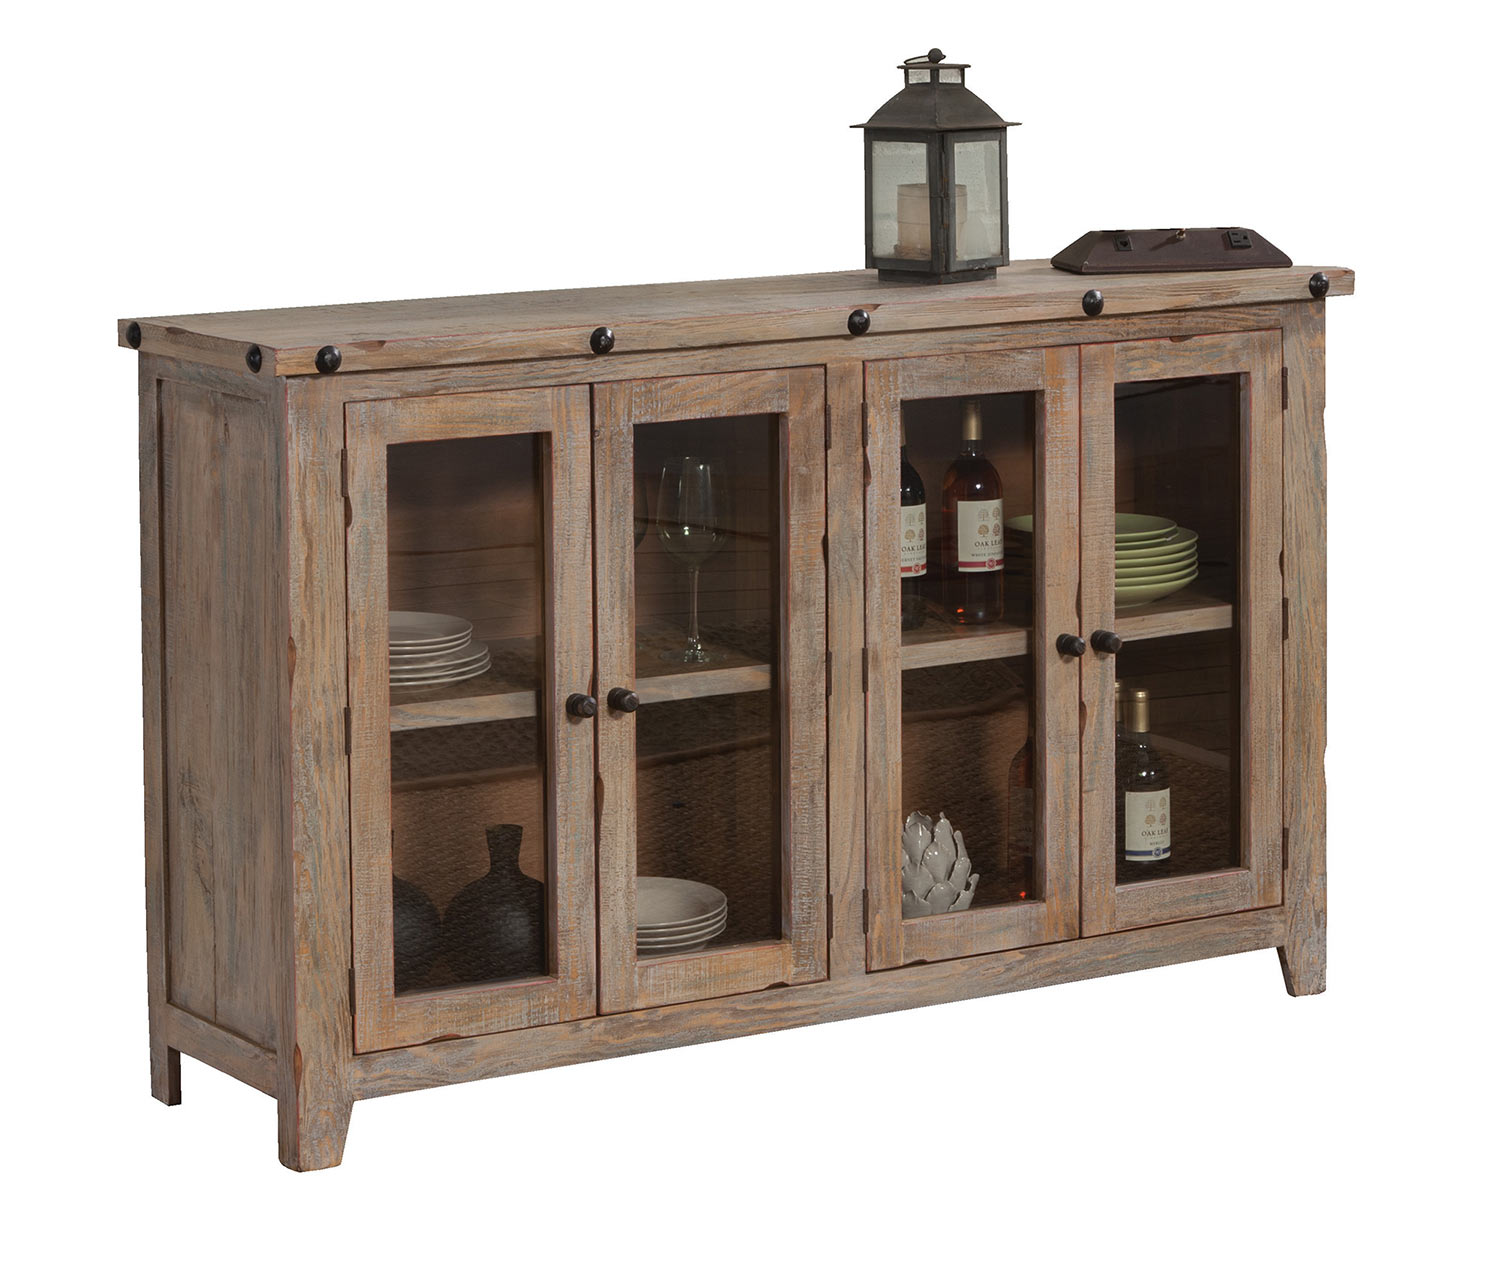 Coaster 950663 Accent Cabinet - Natural Rustic